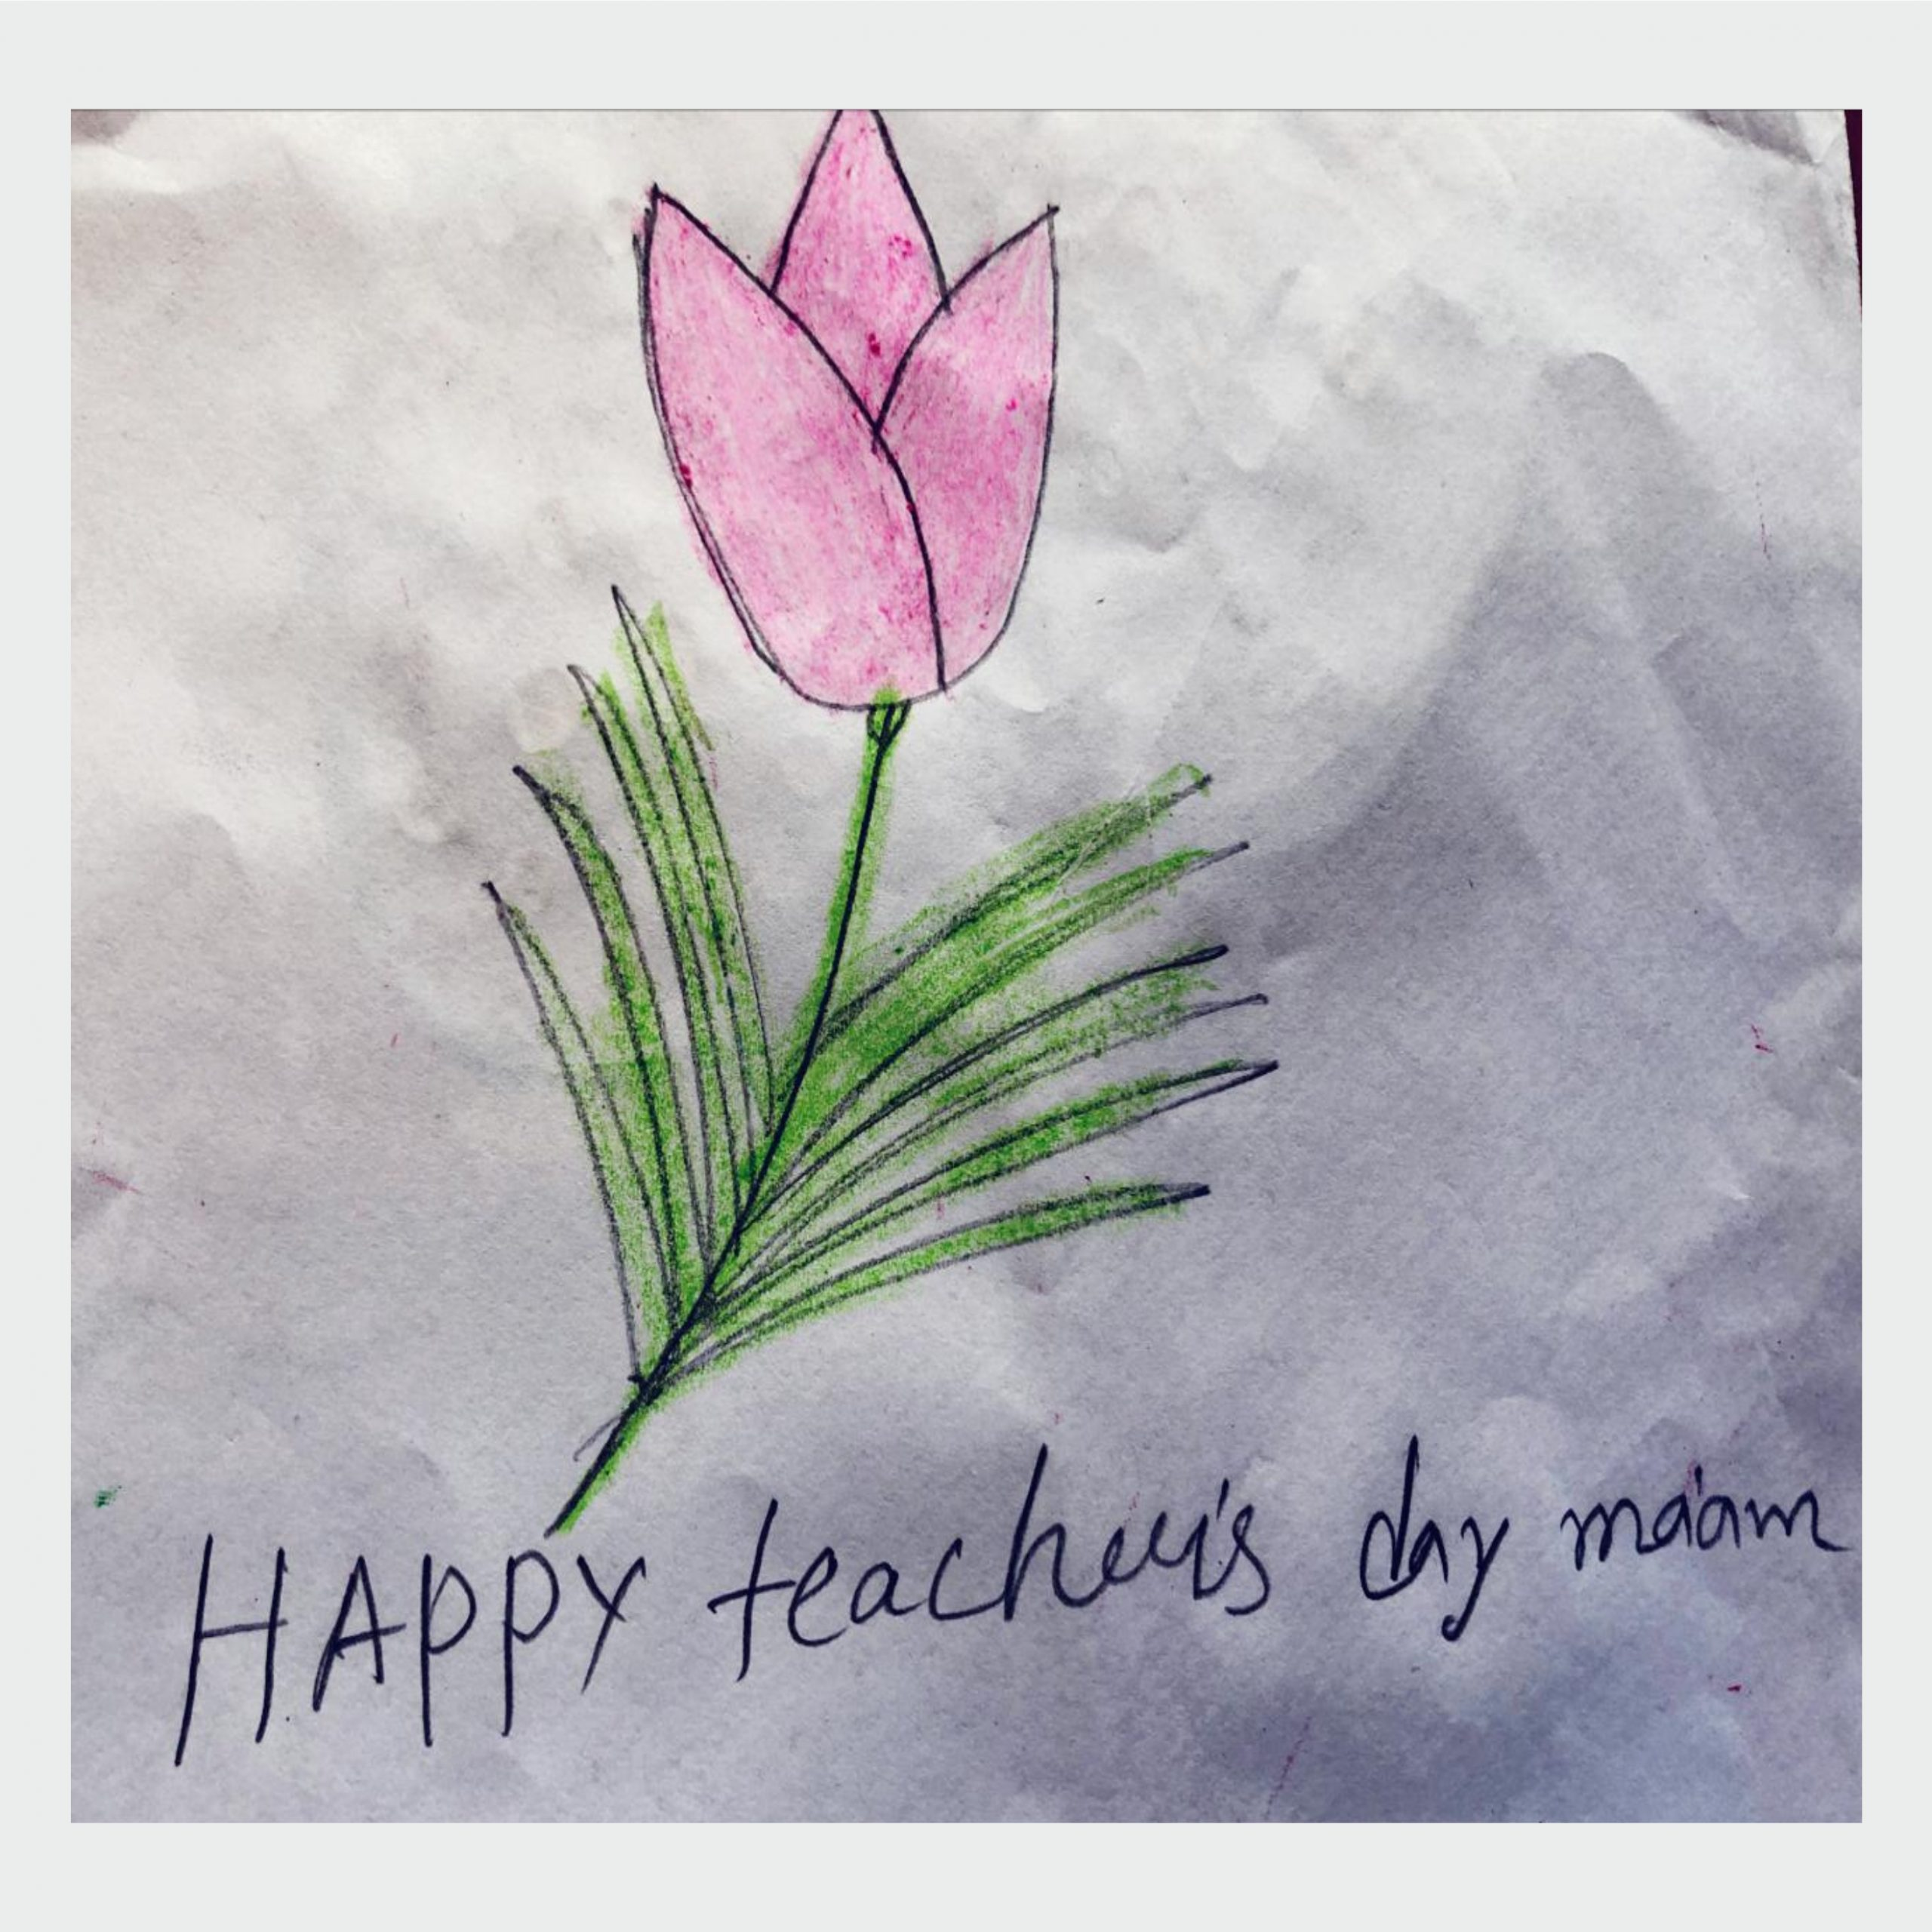 Students wish teachers on Teacher's Day